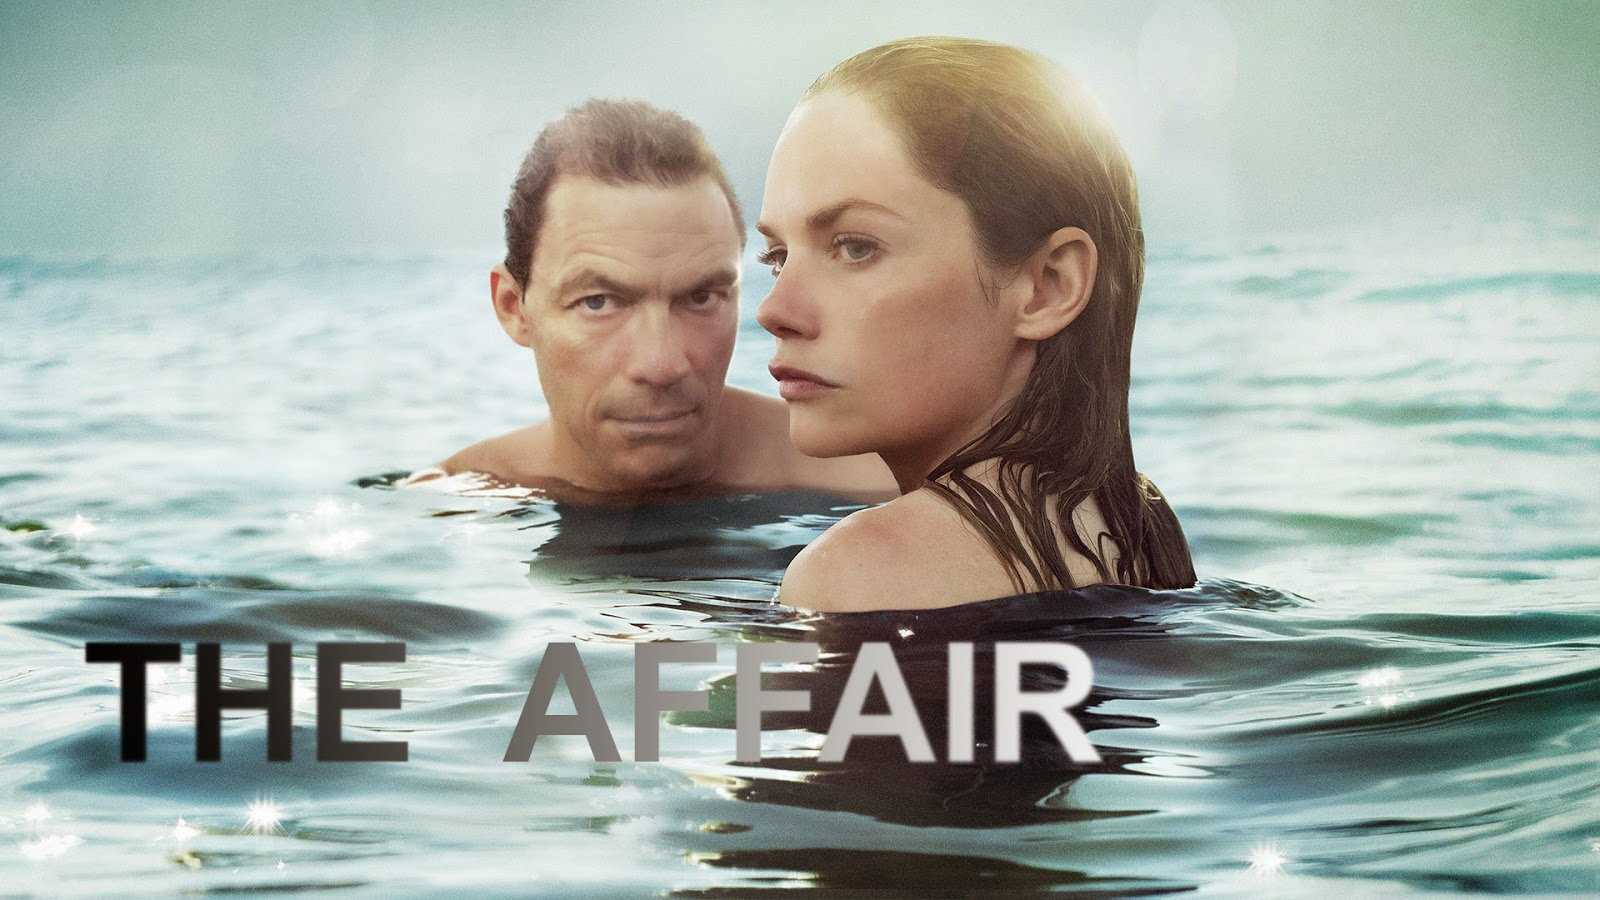 migliori serie tv, serie tv preferite, the affair